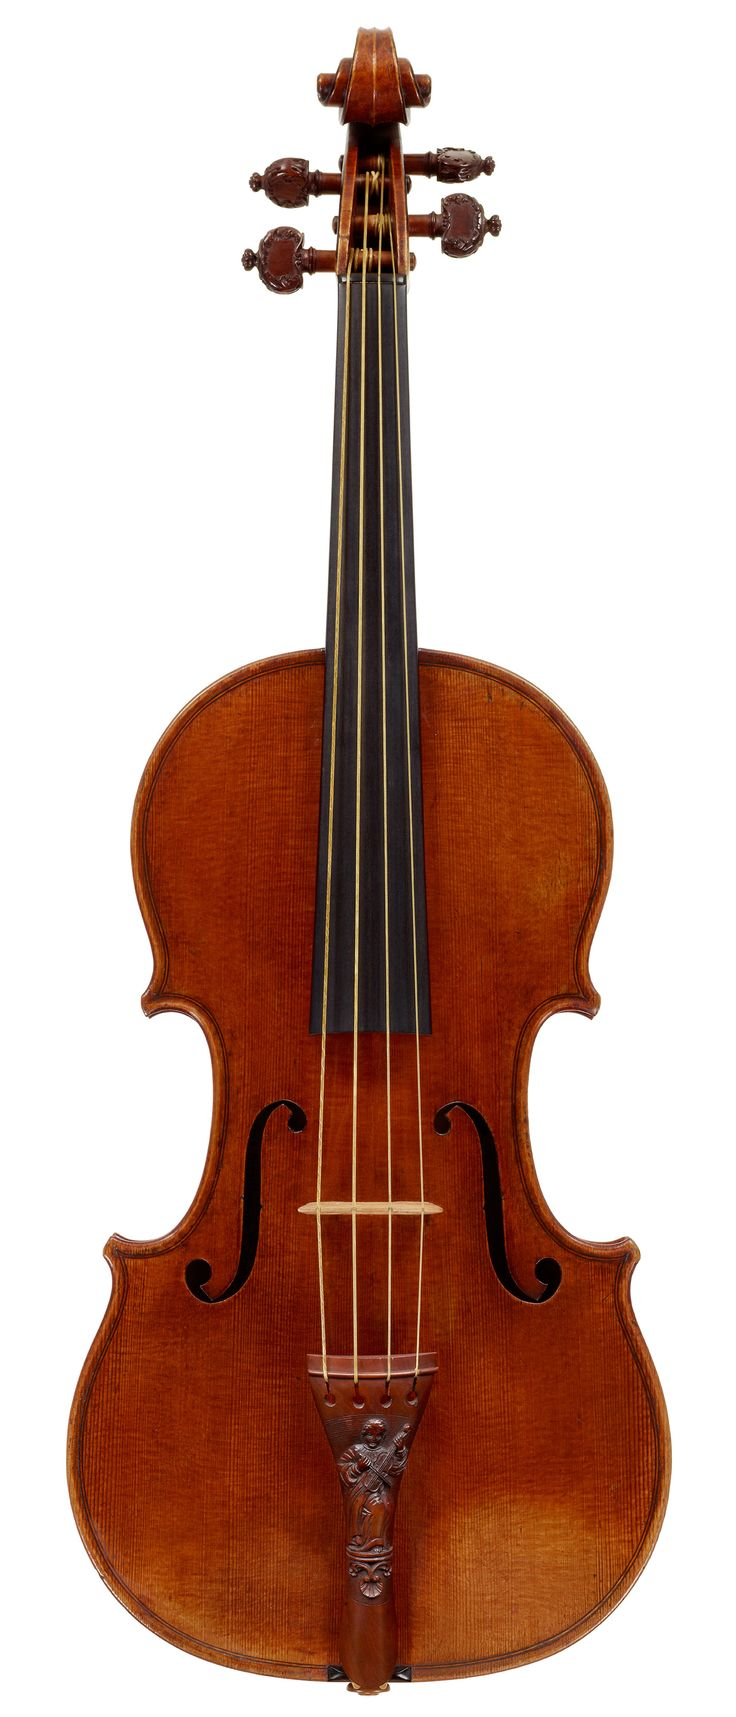 1721 Lady Blunt Stradivarius Violin - sold by Tarisio Auctions on their 20 June 2011 online auction for £9.8 million (US$15.9 million),